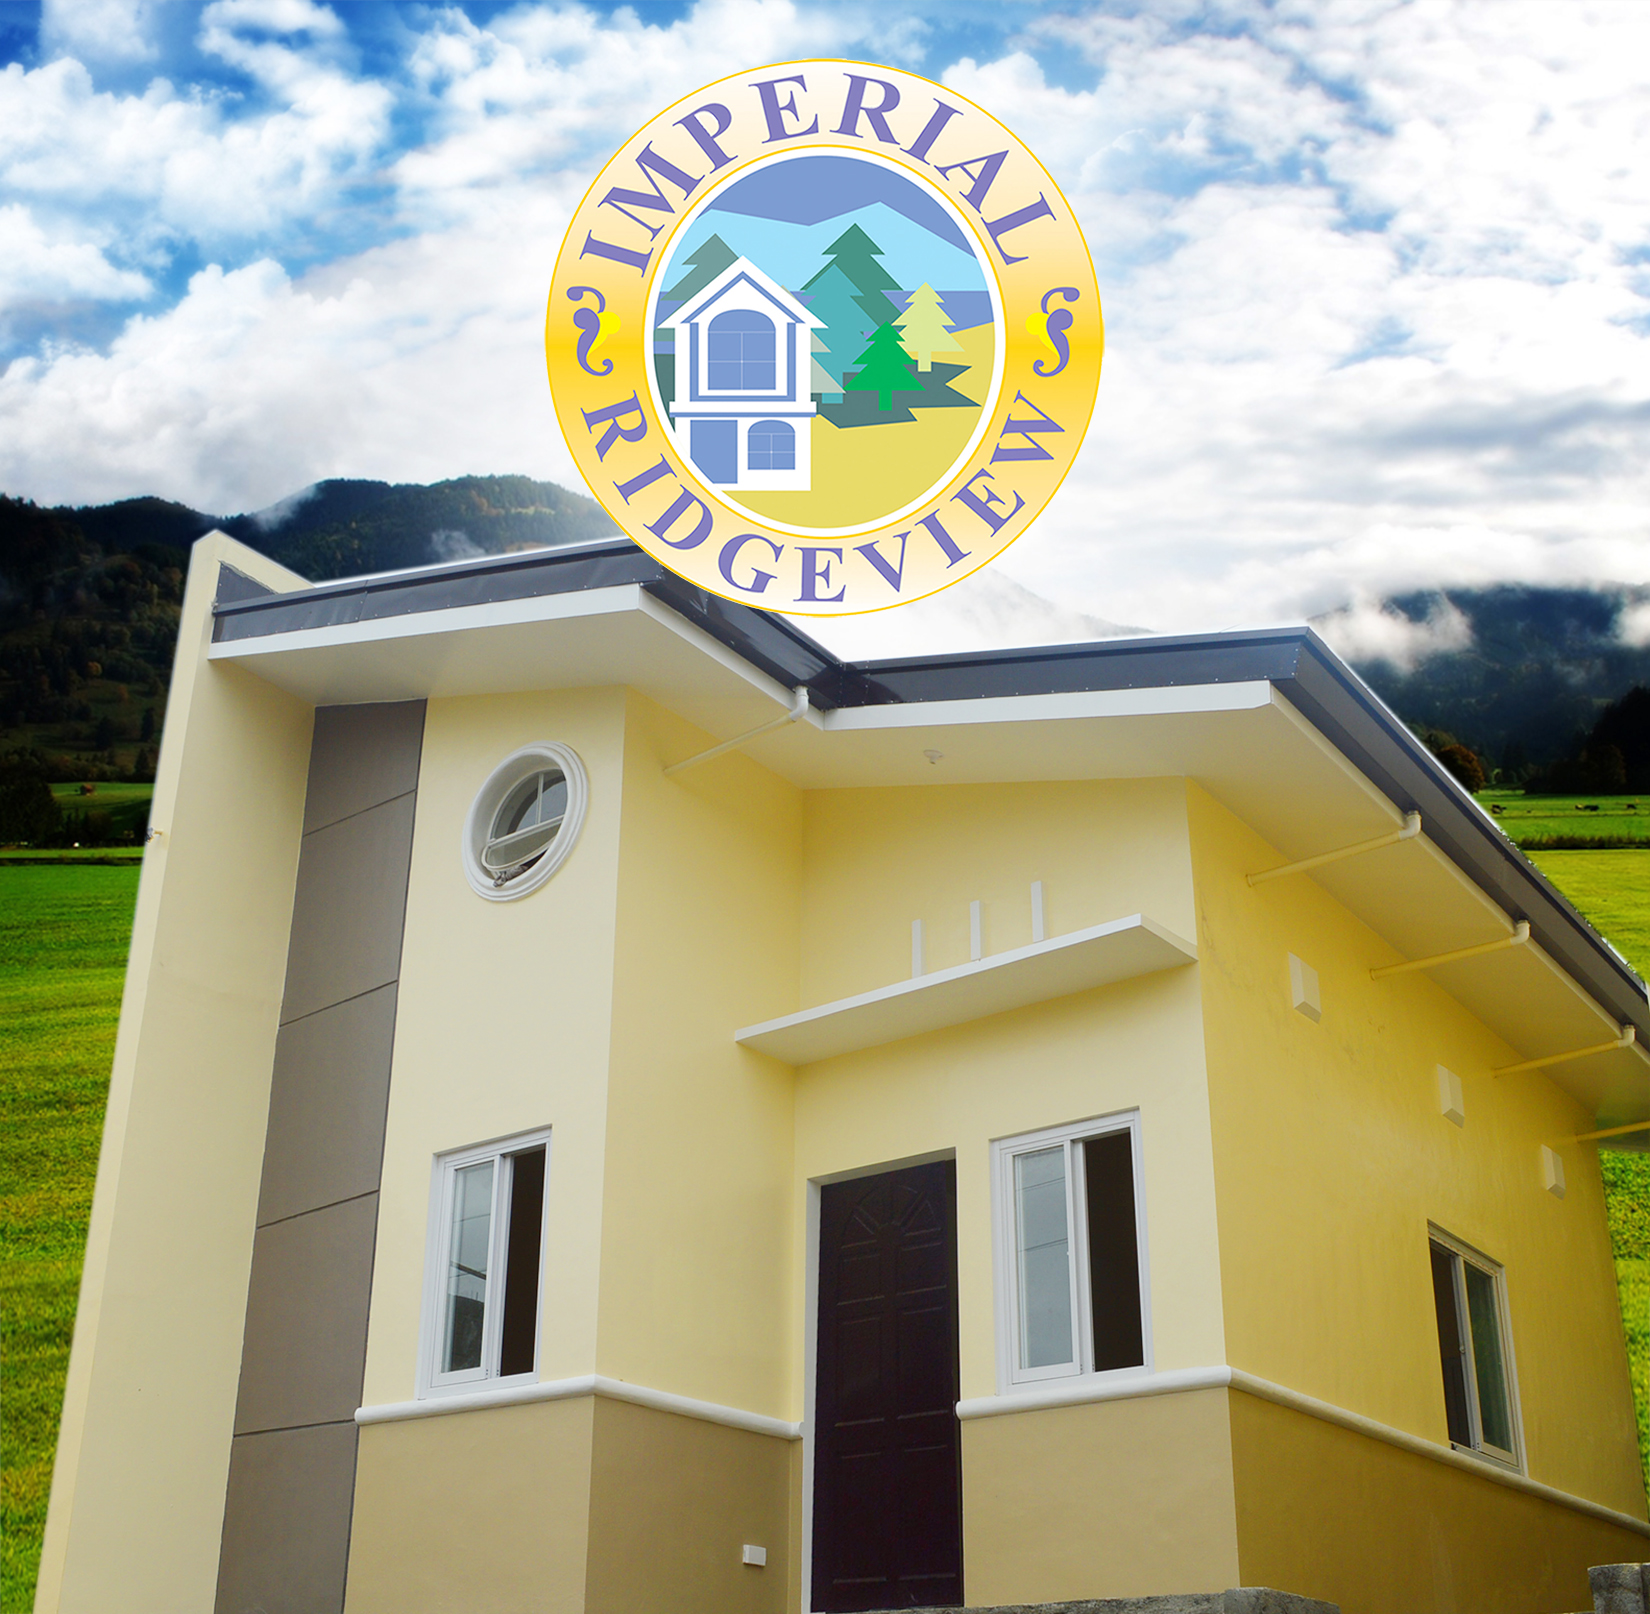 Imperial Ridgeview Subd.